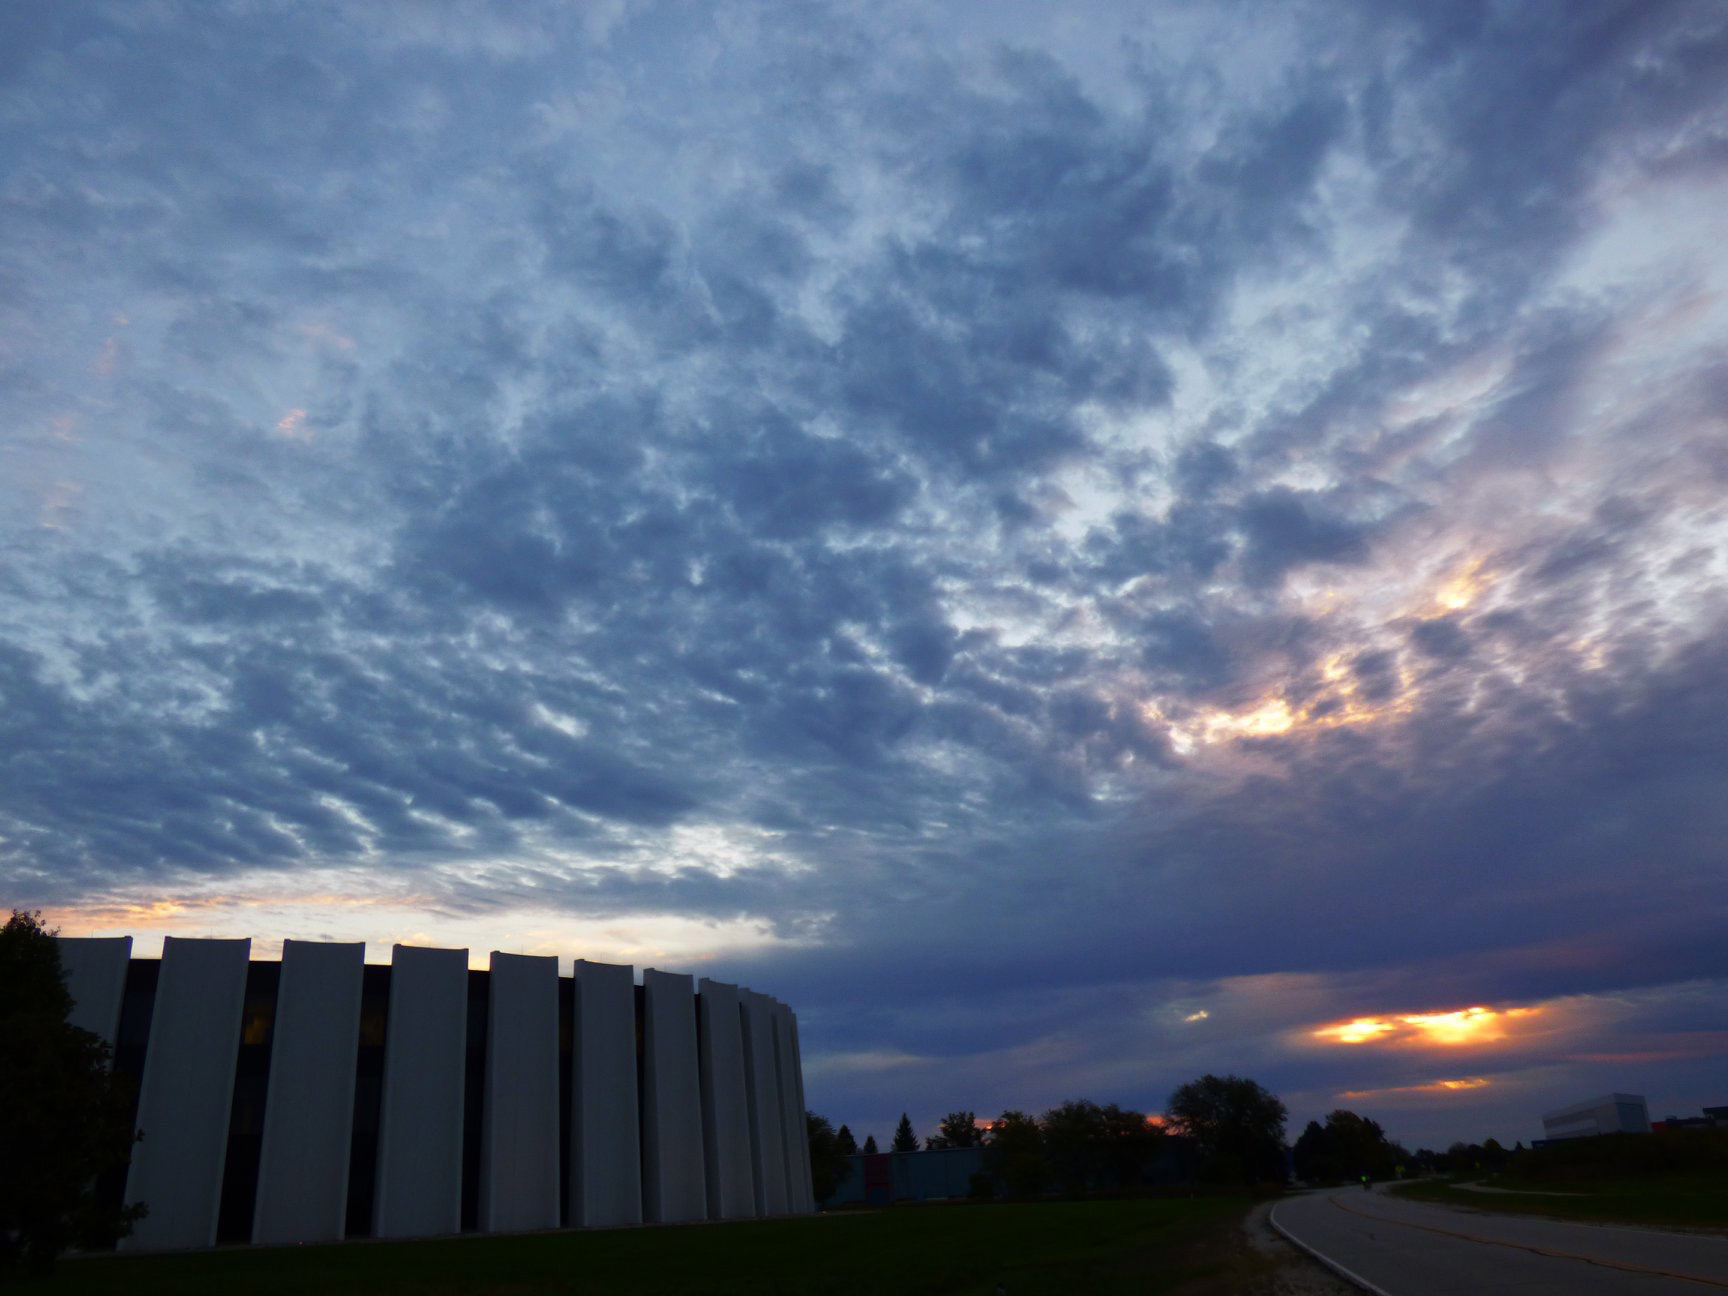 (2/3) ... begin to cover the sky over Feynman Computing Center ... nature, landscape, cloud, sky, Feynman Computing CenterPhoto: Amy Scroggins